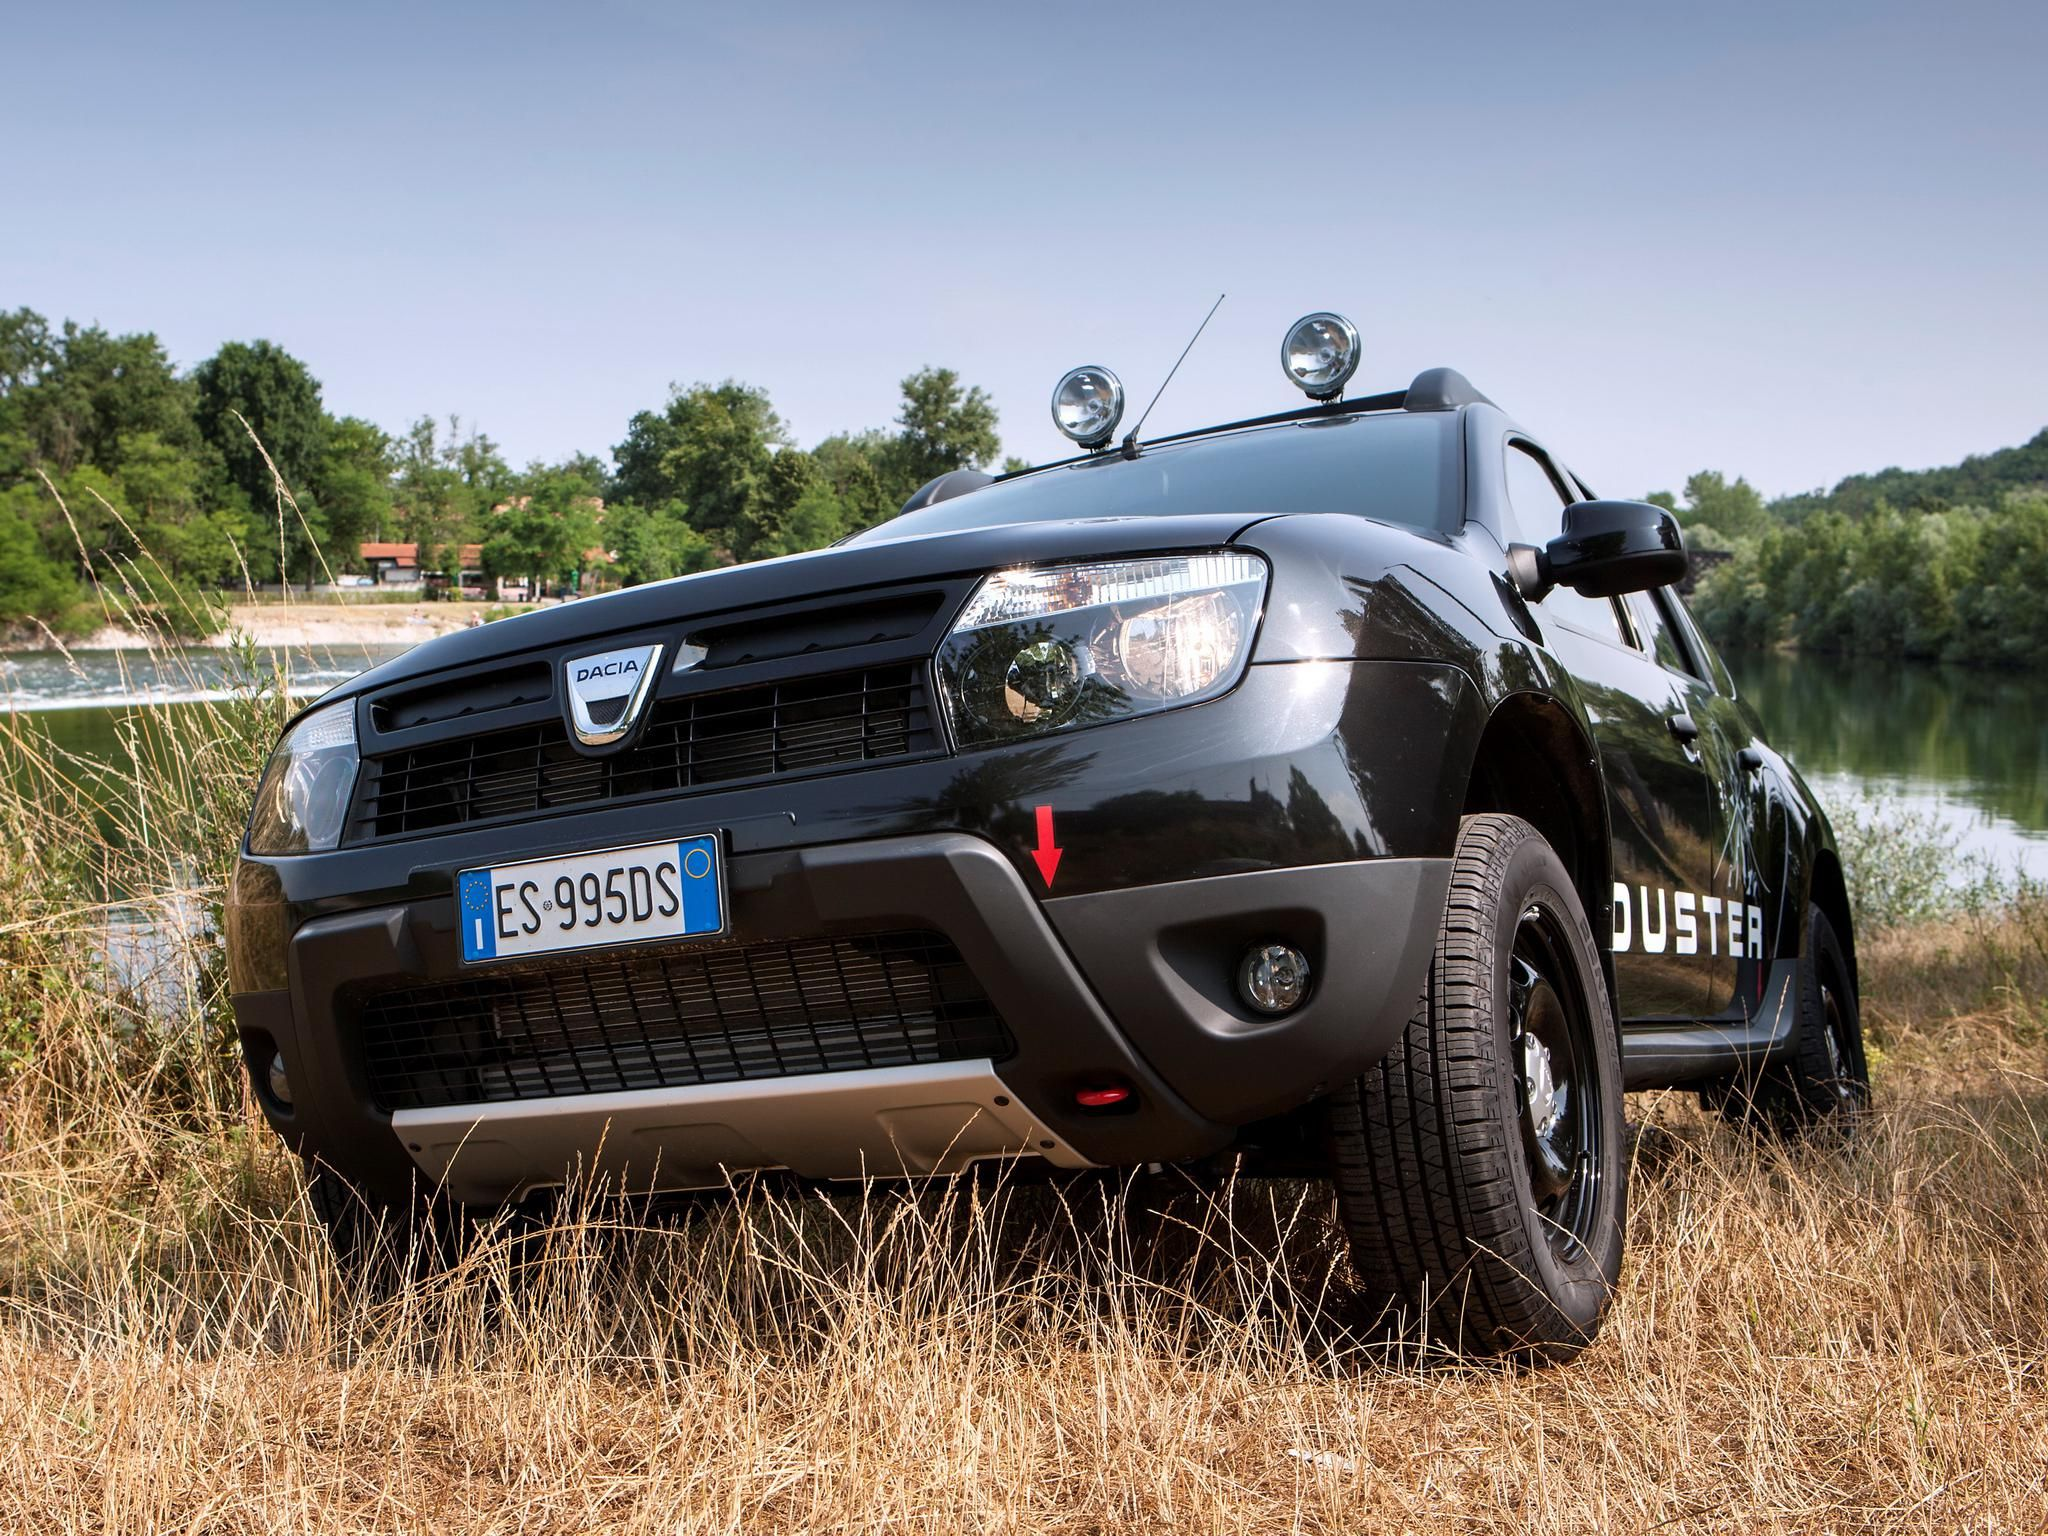 2013 dacia duster aventure dacia dusters cars. Black Bedroom Furniture Sets. Home Design Ideas